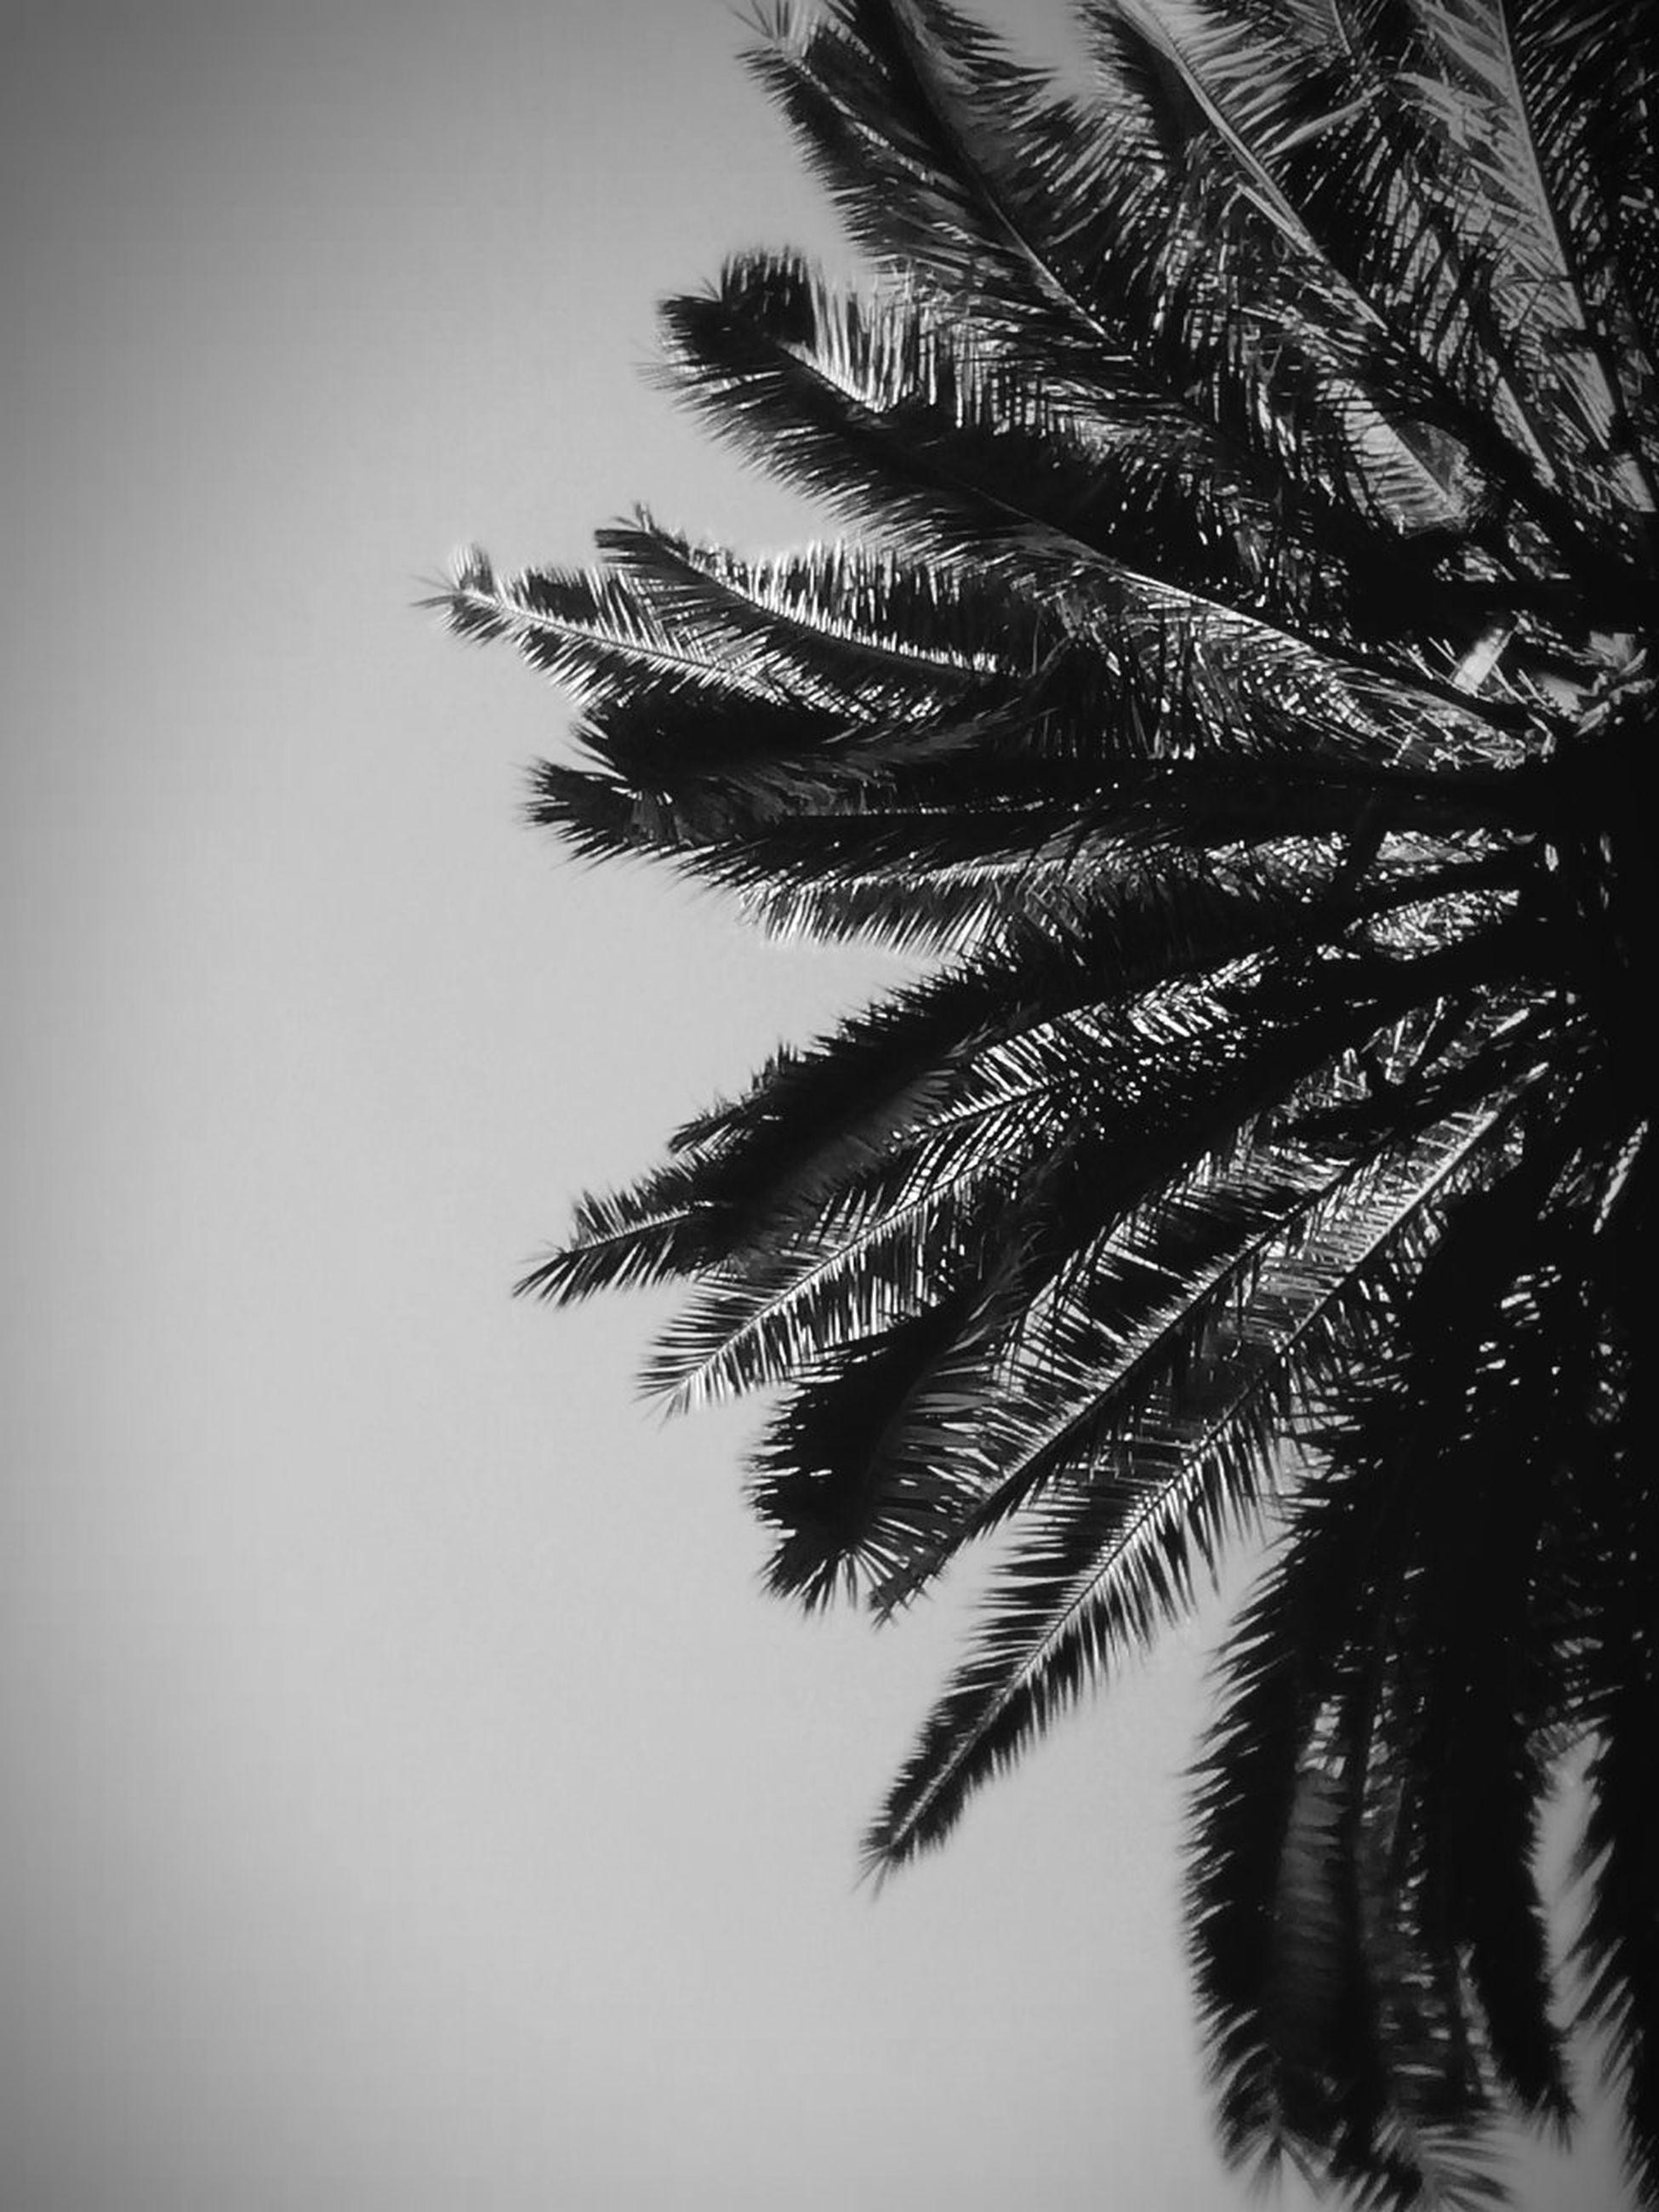 tree, nature, no people, close-up, tranquility, branch, palm tree, indoors, beauty in nature, day, white background, sky